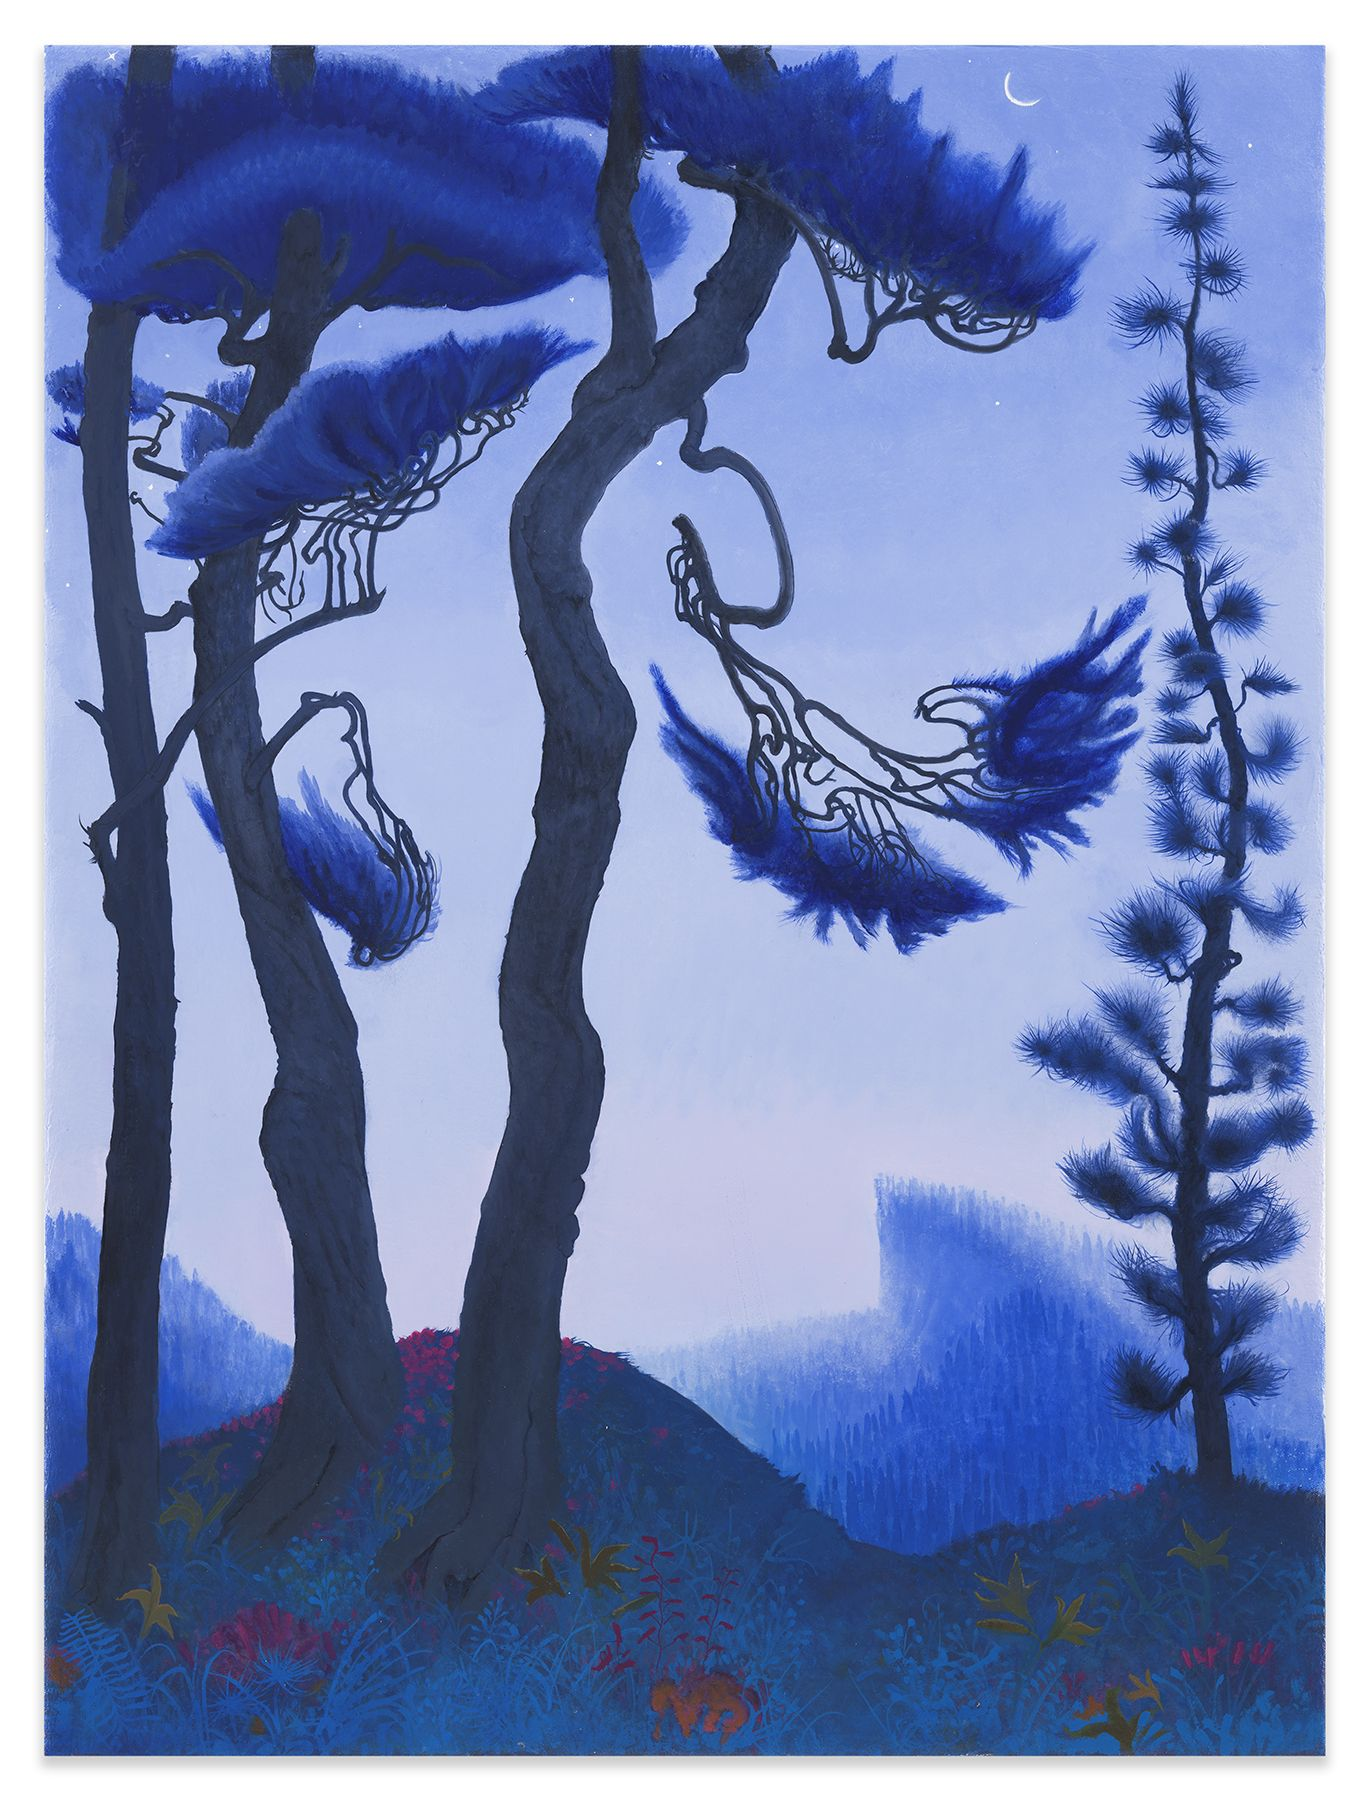 Blue Spruce and Waning Crescent Moon, 2021, Enamel on canvas, 40 1/4 x 30 1/8 inches, 102.2 x 76.5 cm, (MMG#32997)